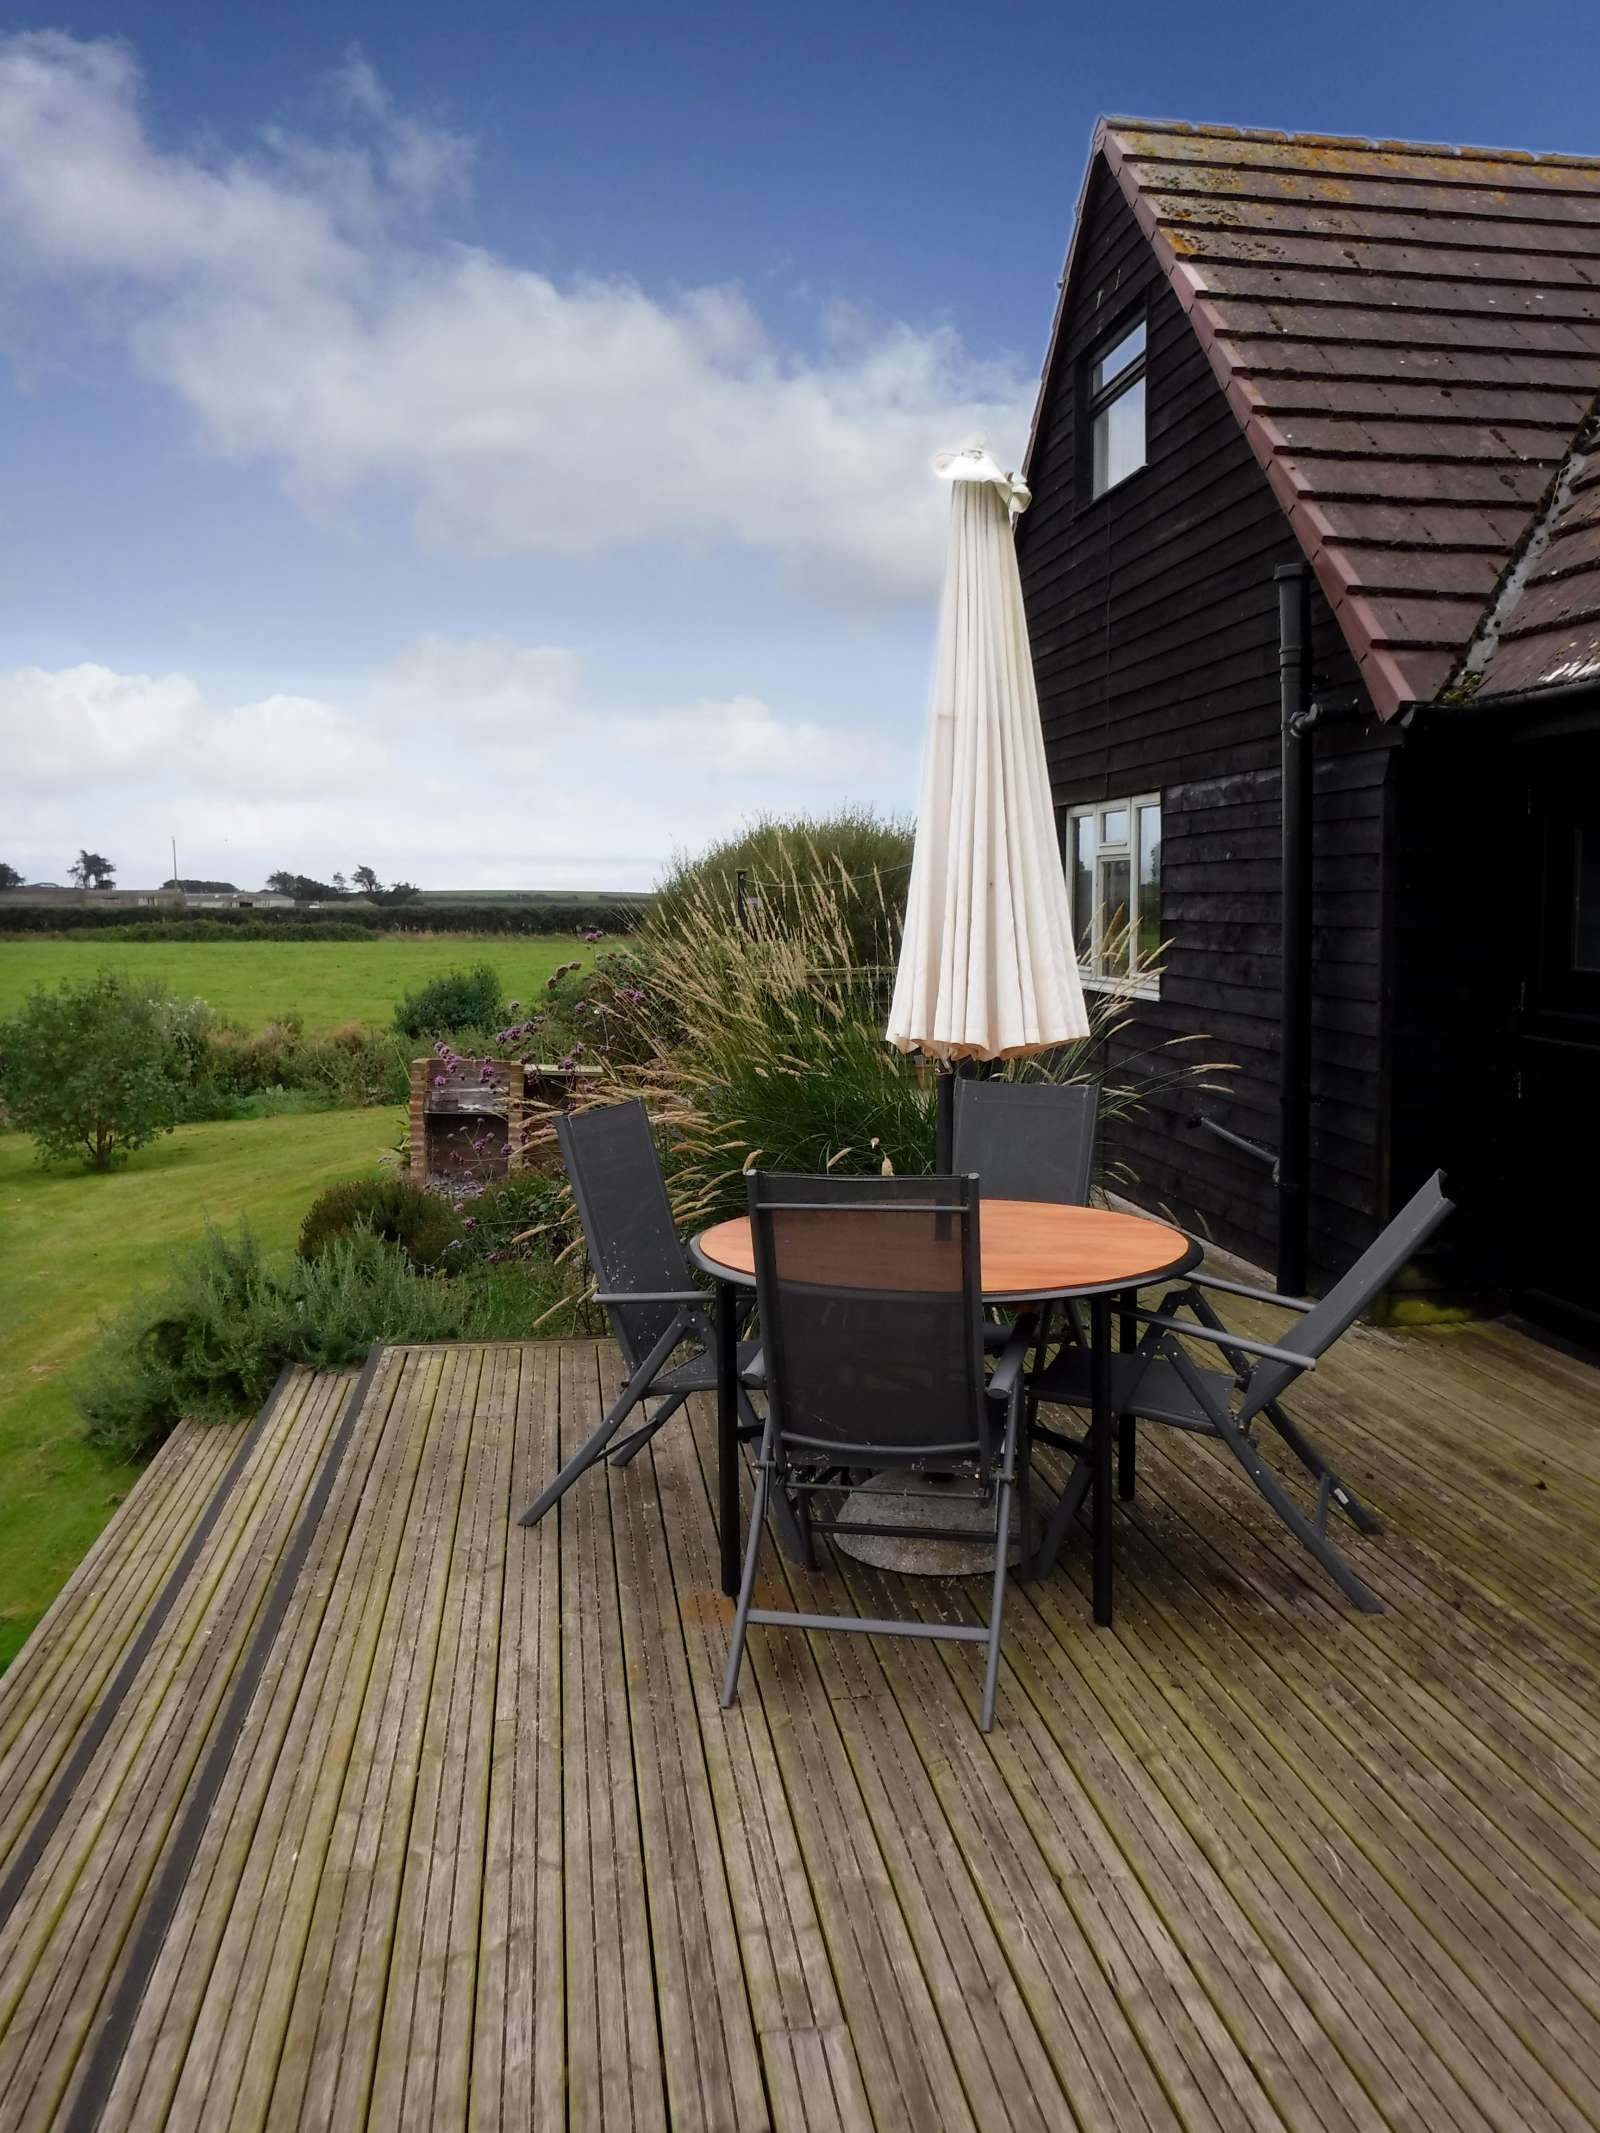 Holiday rental Cottage in Shorwell - The Little Barn is surrounded by farmland